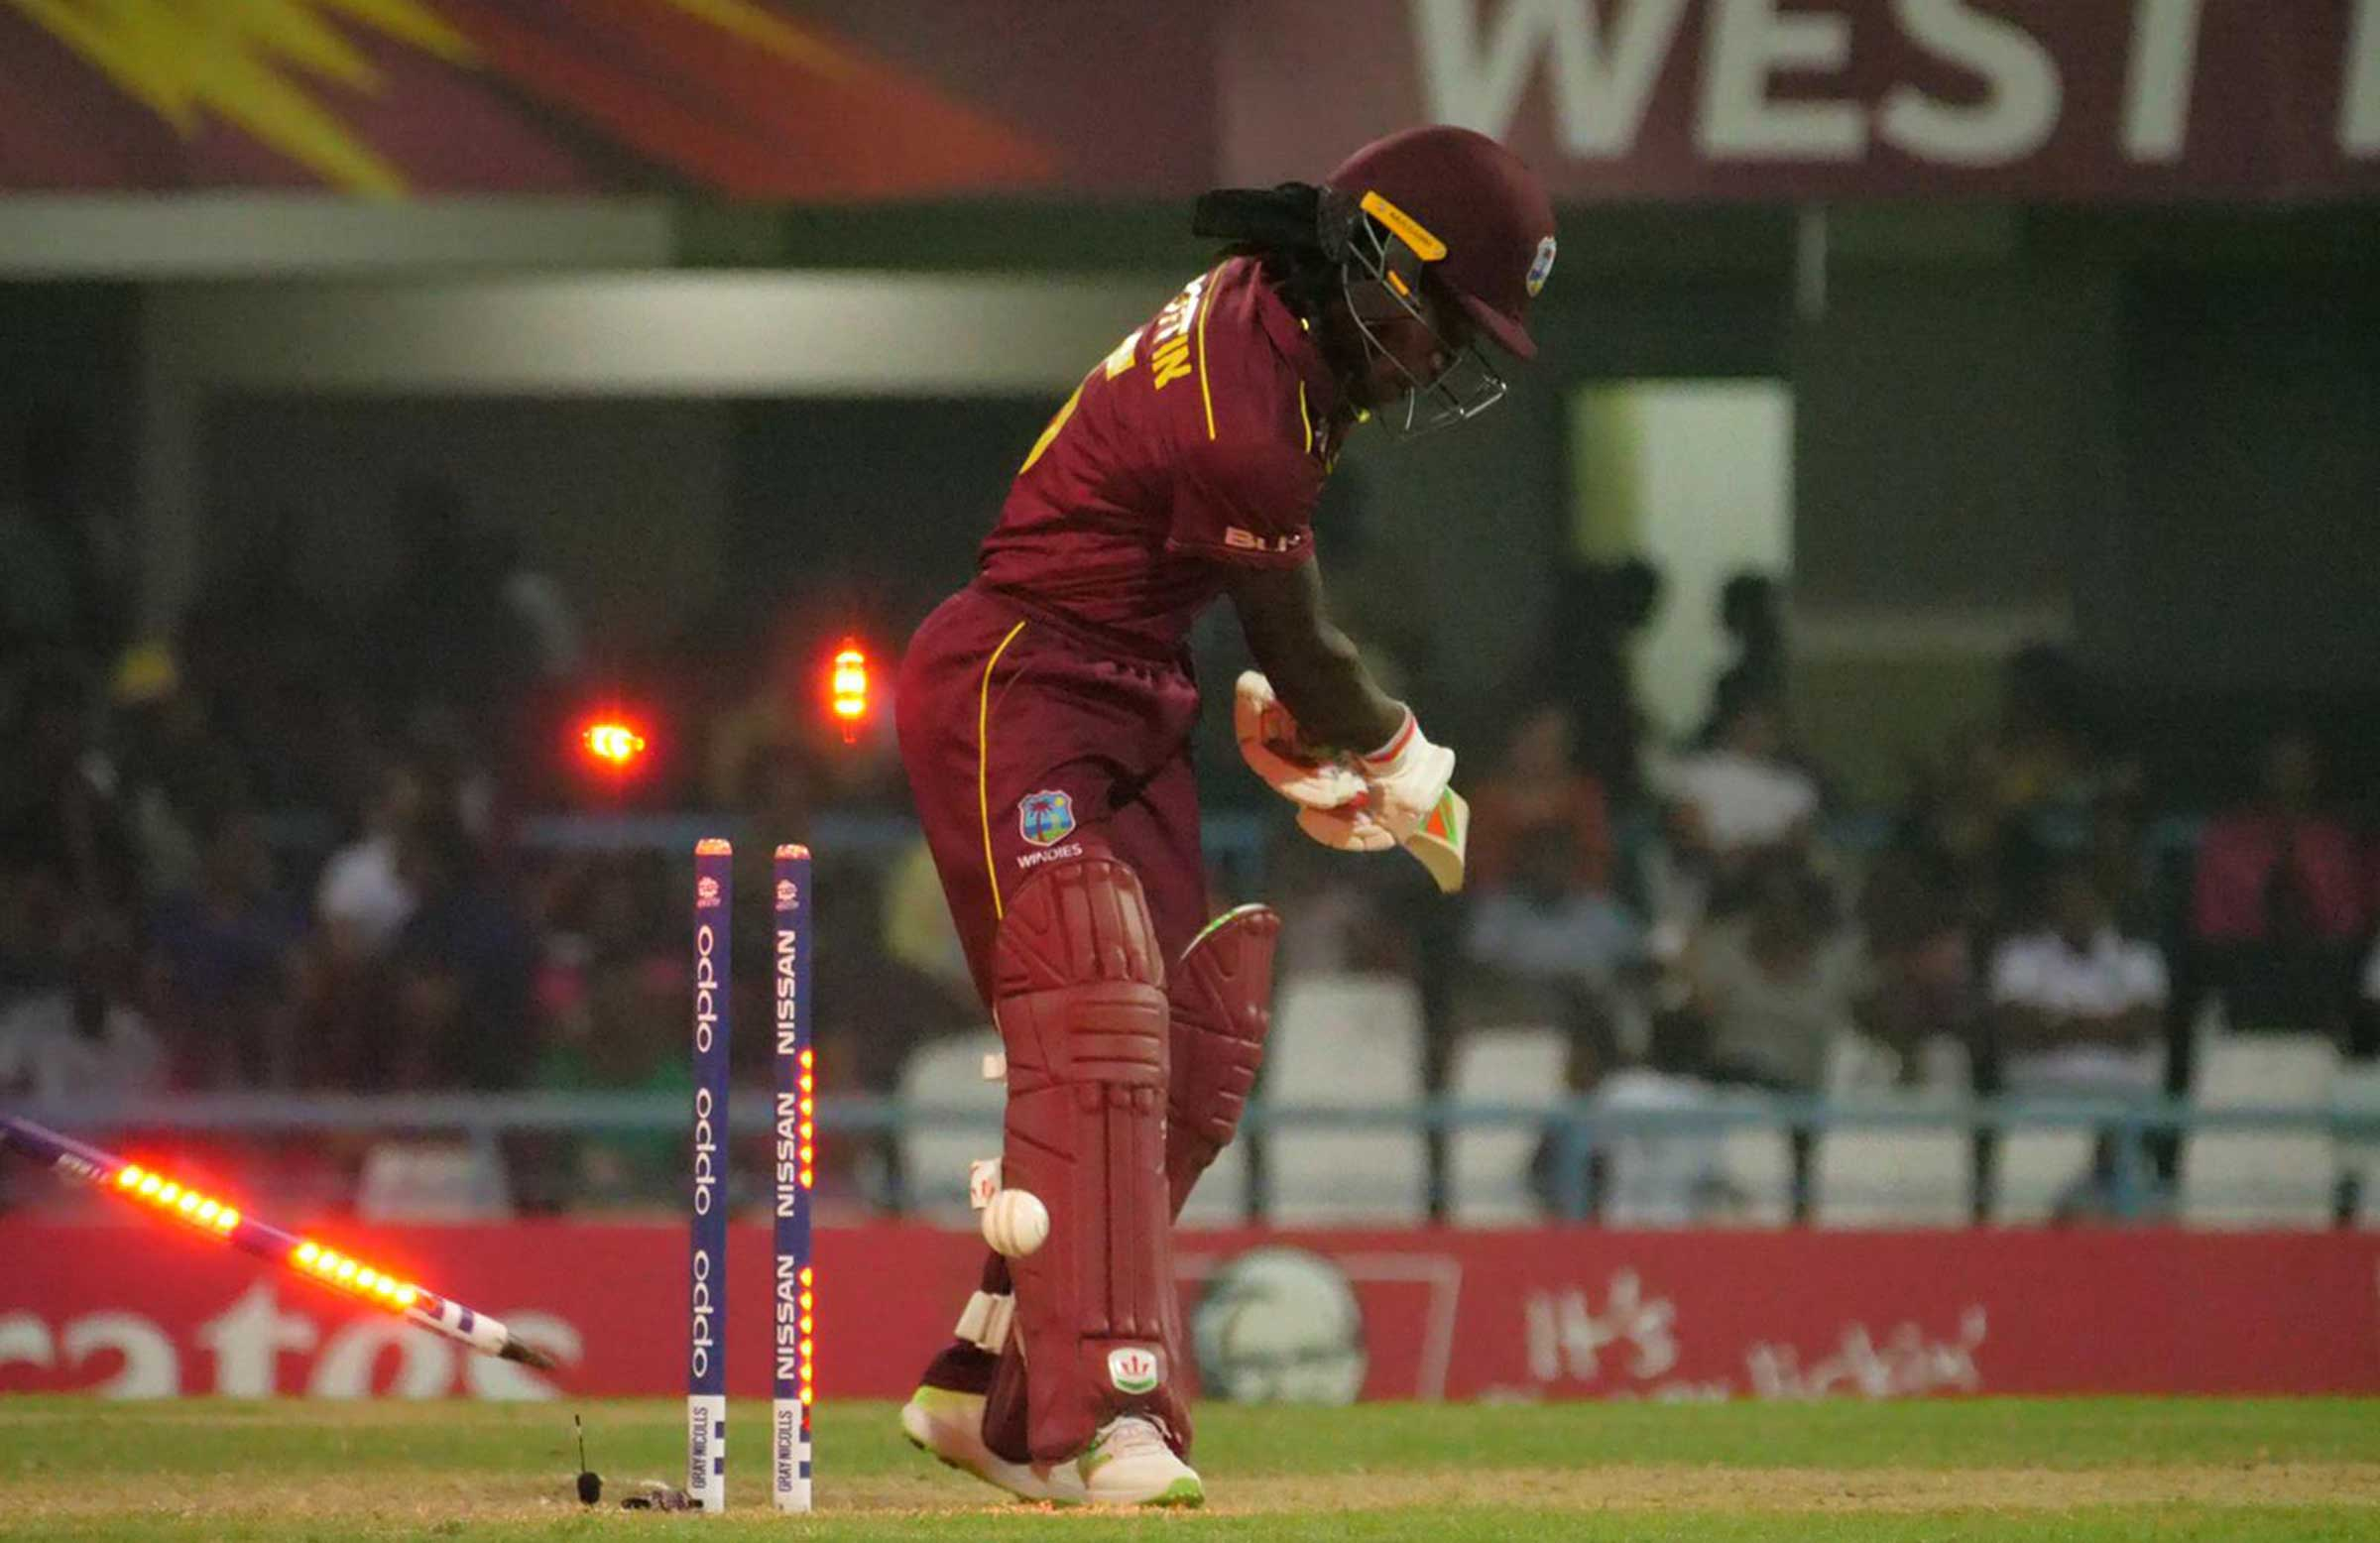 Deandra Dottin is knocked over by Ellyse Perry // cricket.com.au